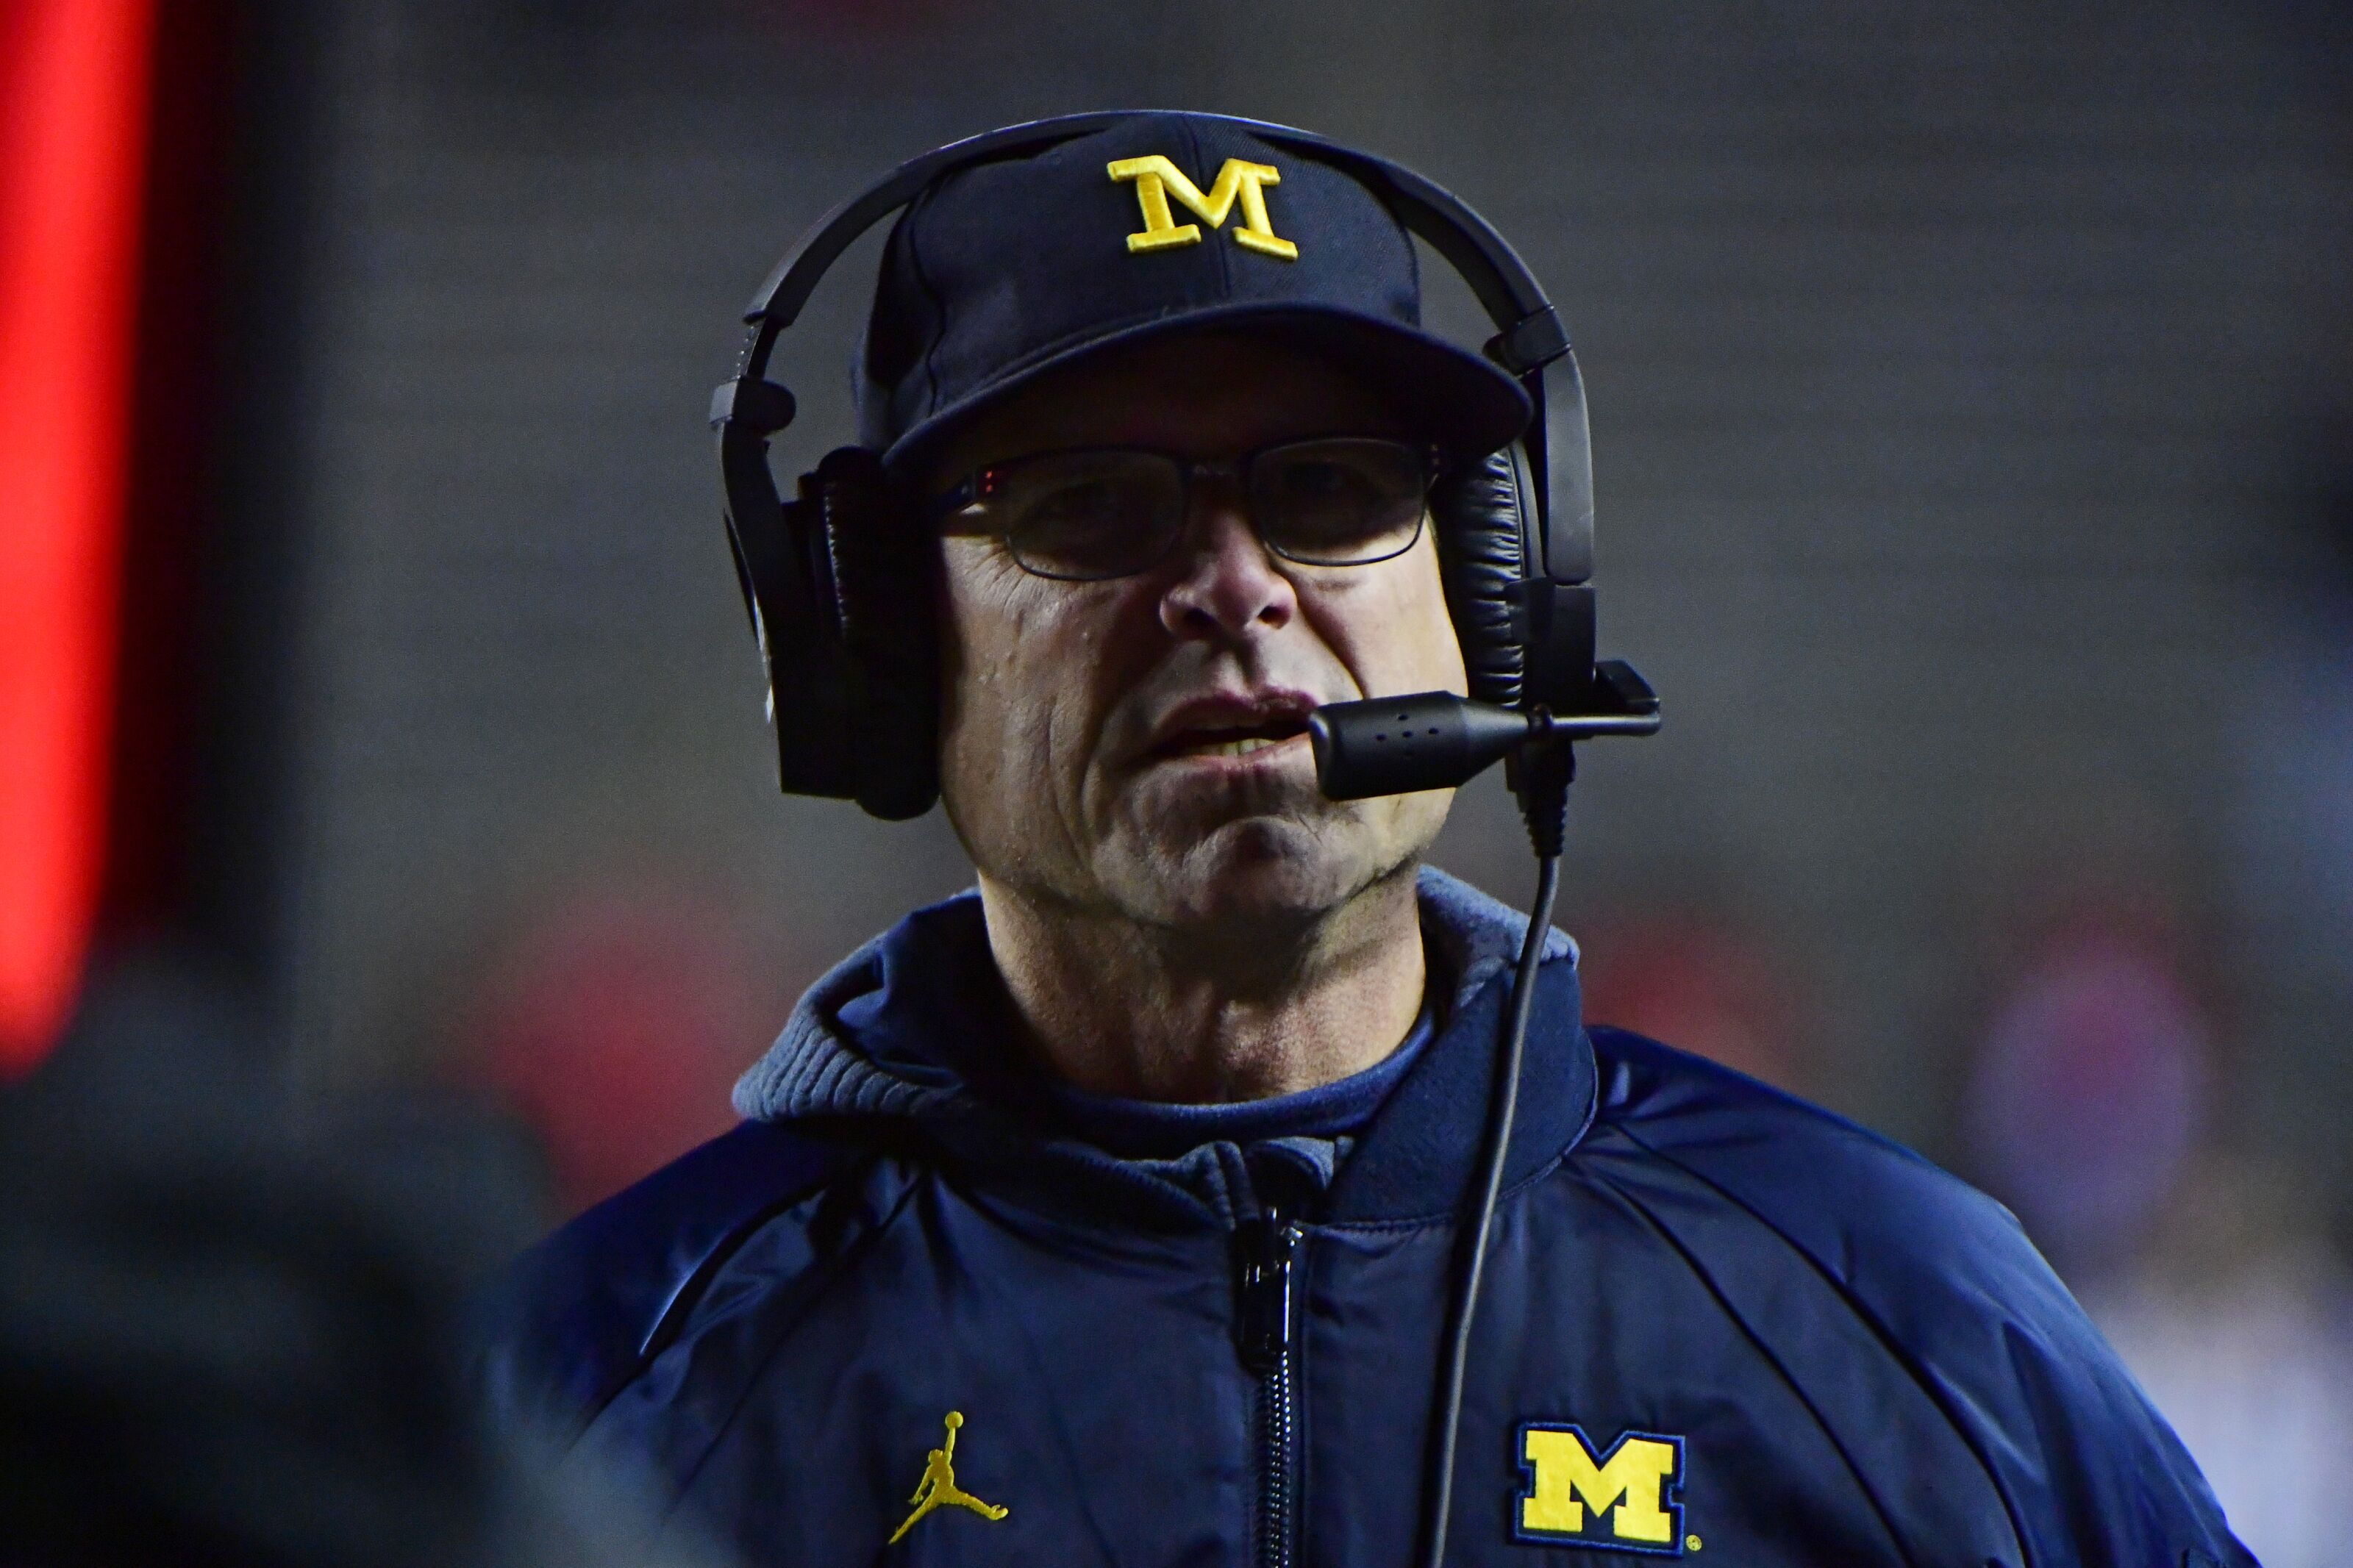 Michigan Football: Jim Harbaugh opens up about Wolverines offense